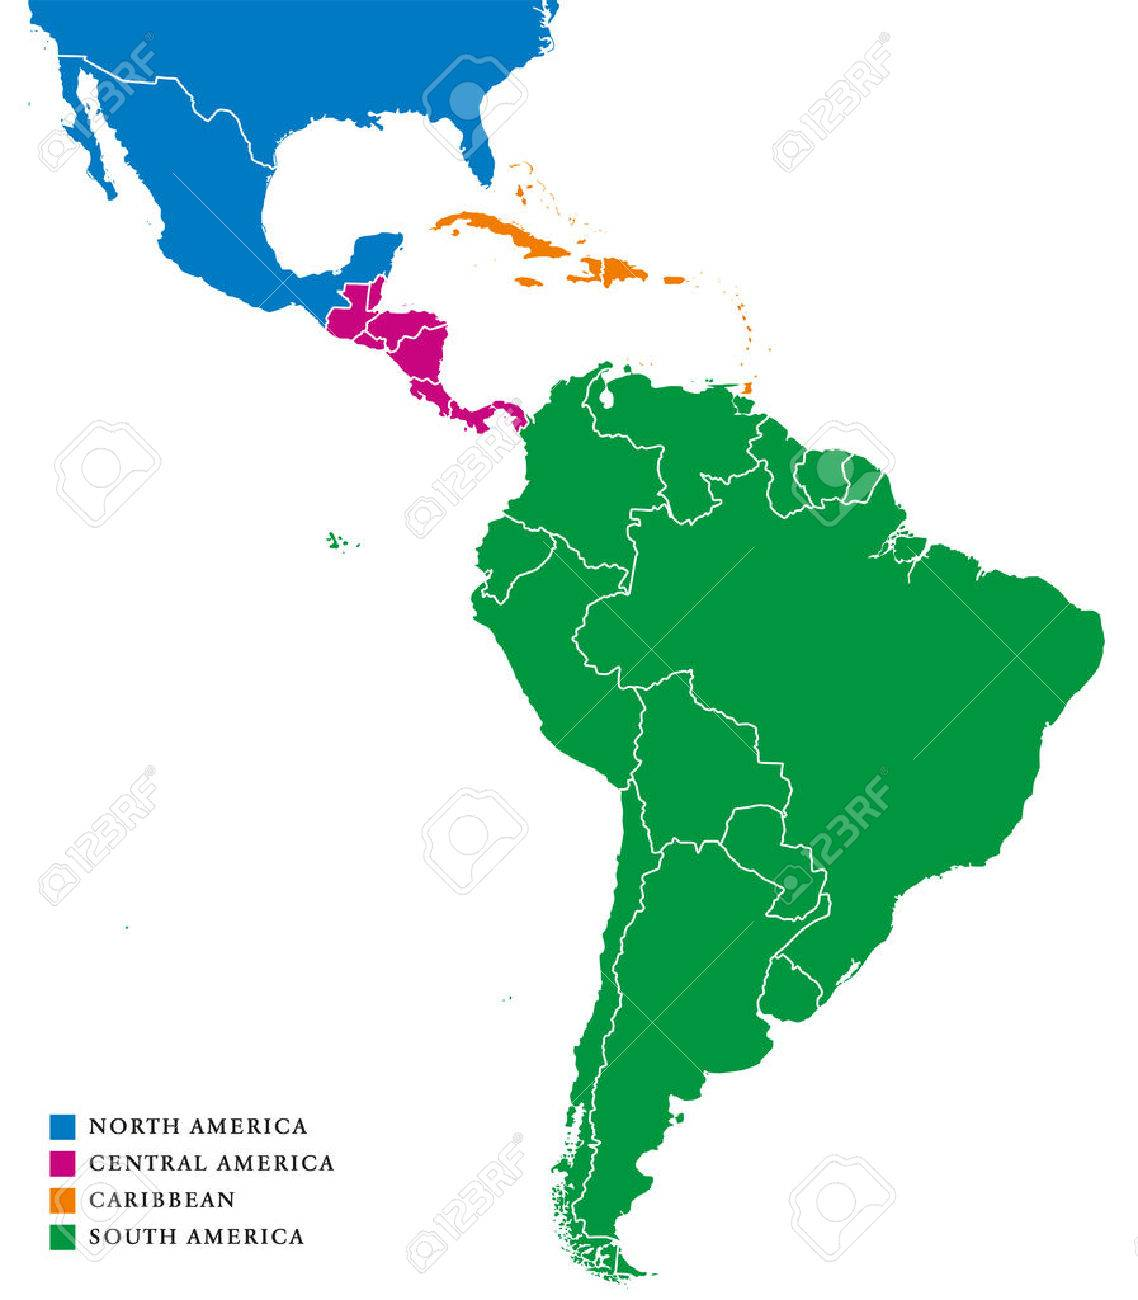 Latin America subregions map. The subregions Caribbean, North,..